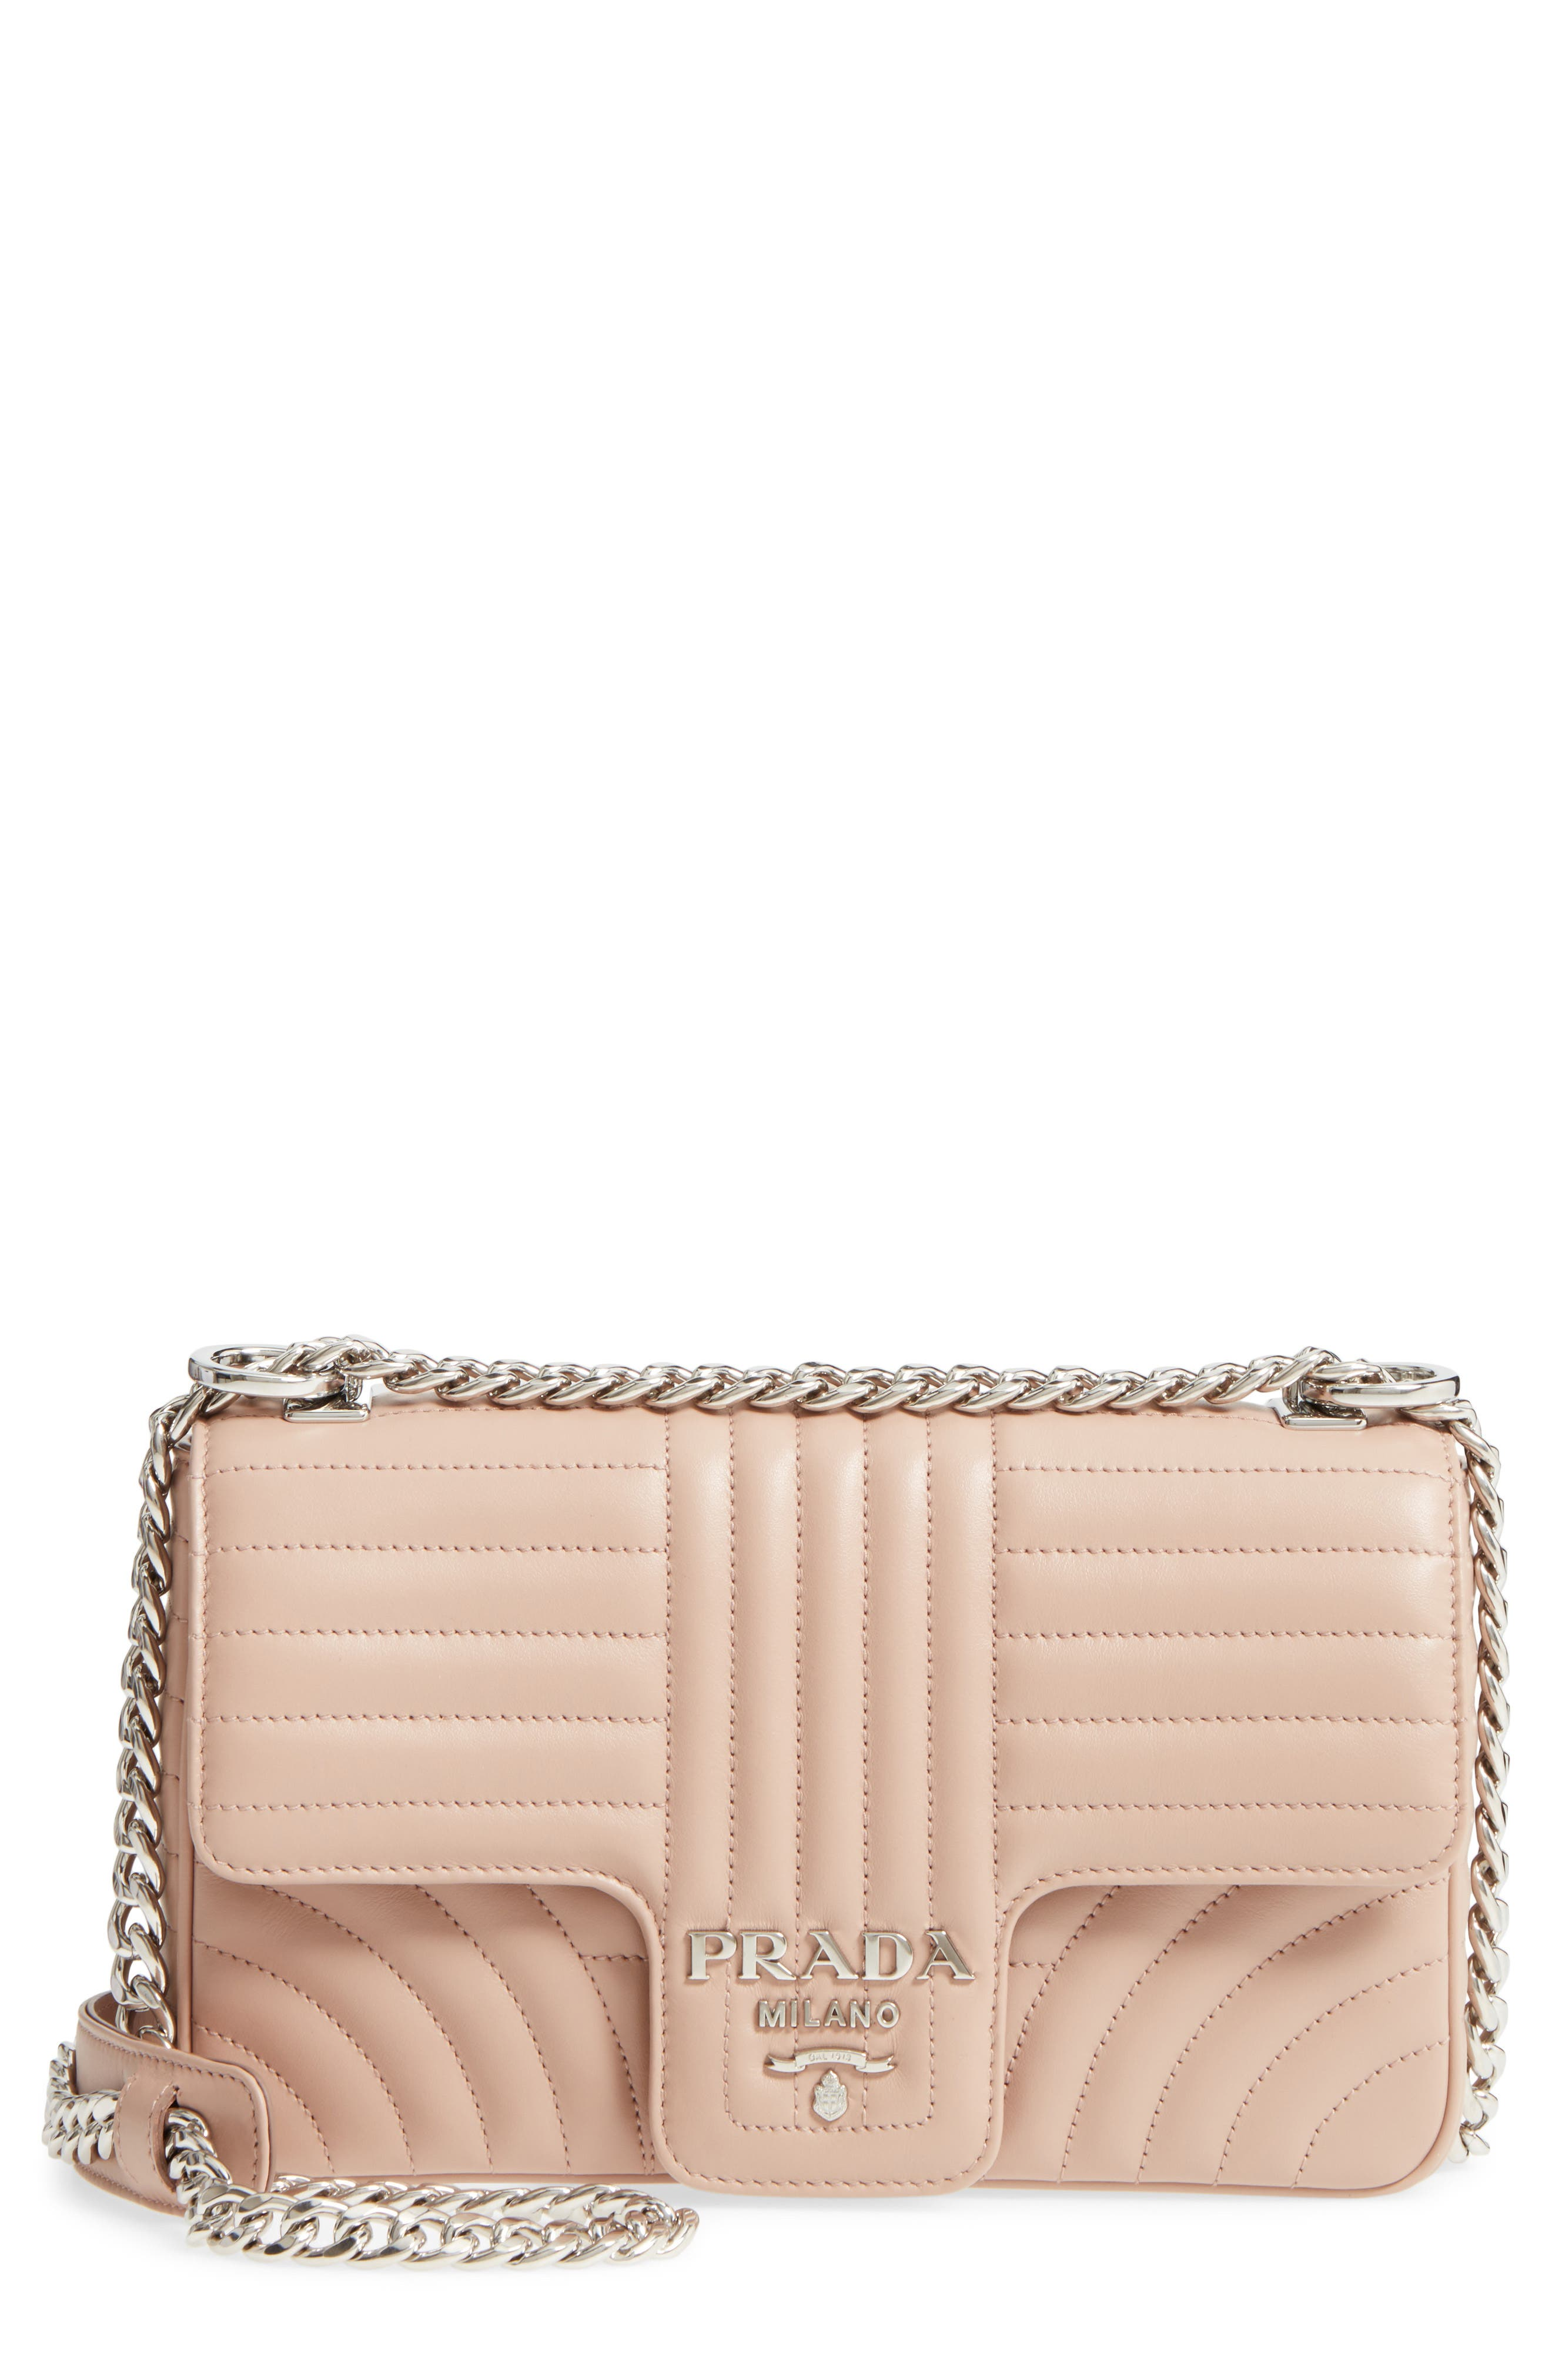 Prada Large Quilted Shoulder Bag